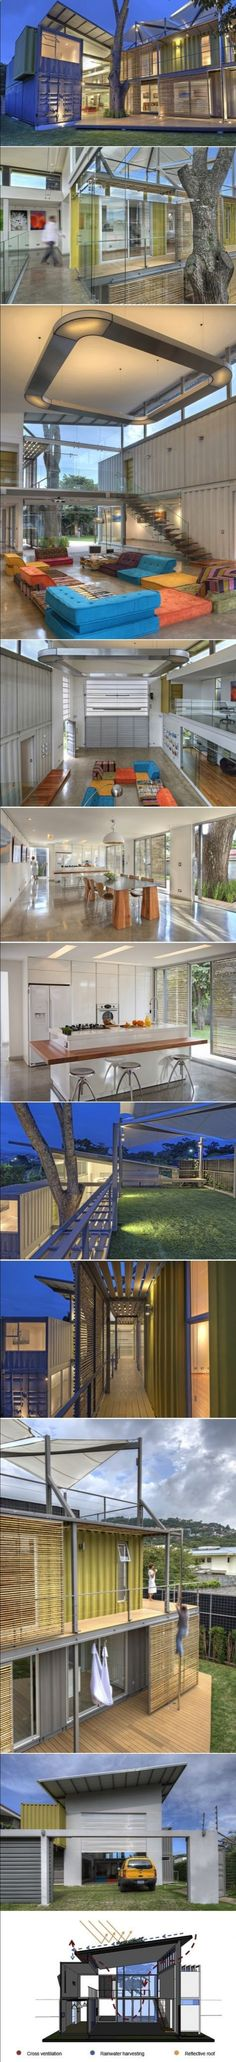 Container House - Shipping Container Home Infused With Sustainable Features - Who Else Wants Simple Step-By-Step Plans To Design And Build A Container Home From Scratch?